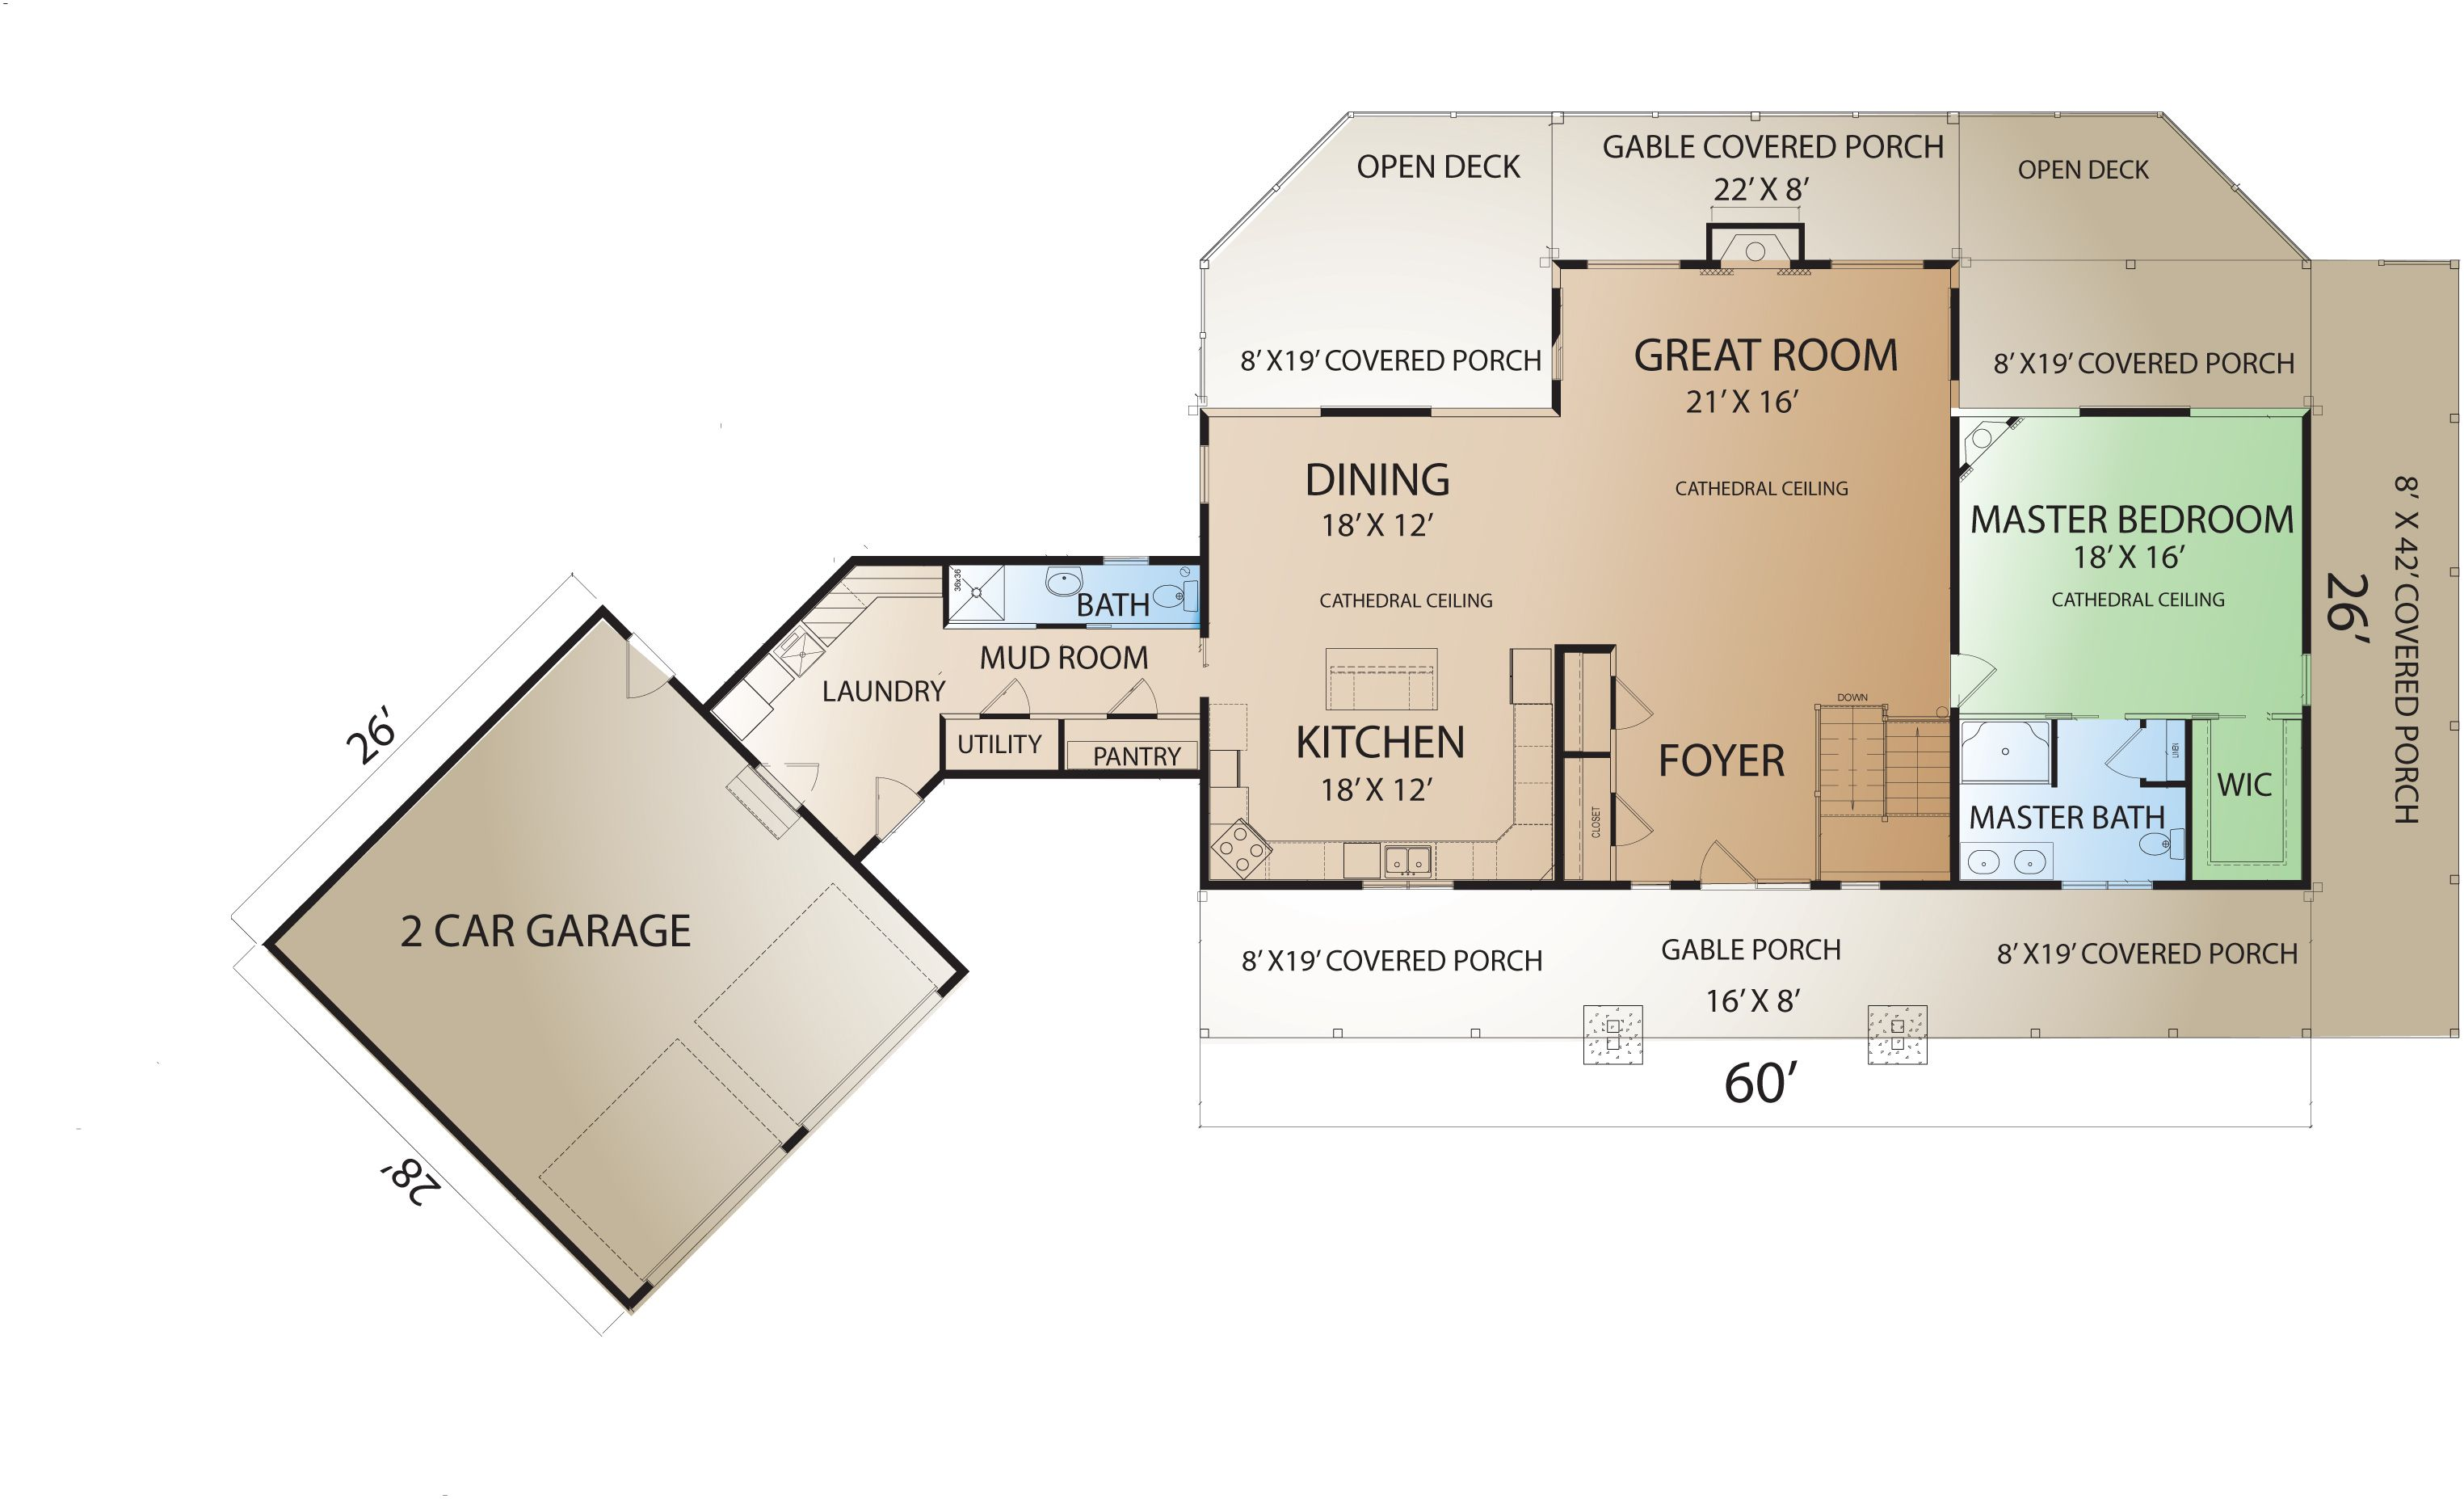 Floor plans attached garage countrymark prairieranch fp for 2 bedroom house plans with attached garage